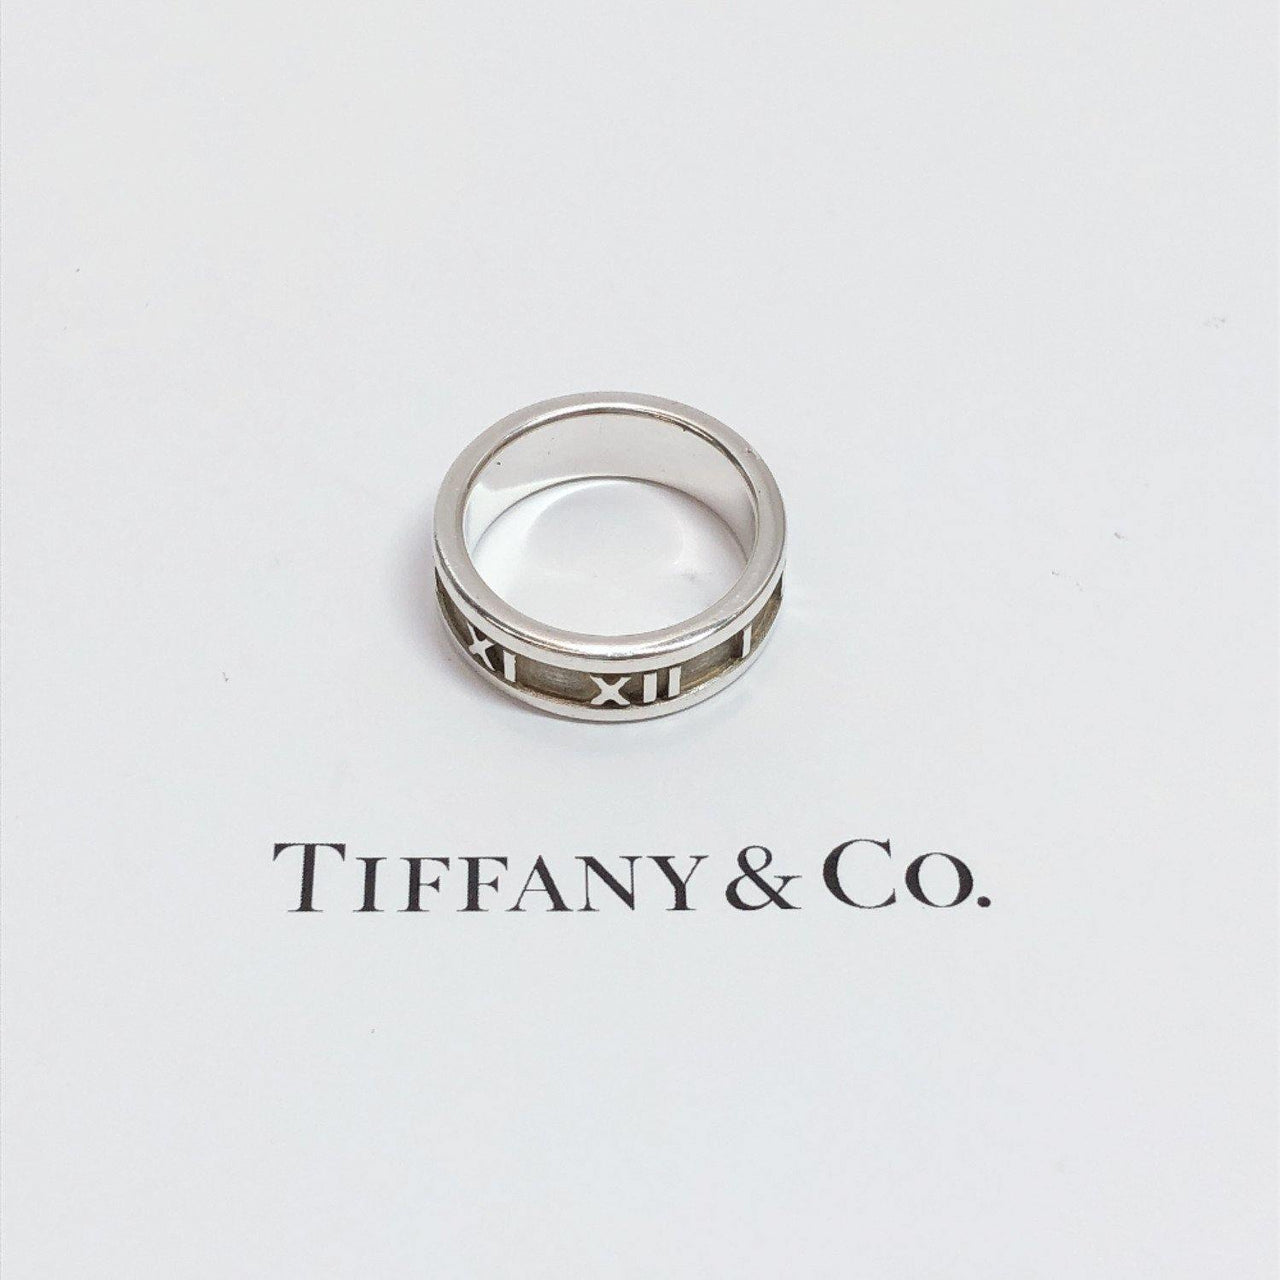 TIFFANY&Co. Ring Atlas Silver925 12 Silver Women Used - JP-BRANDS.com